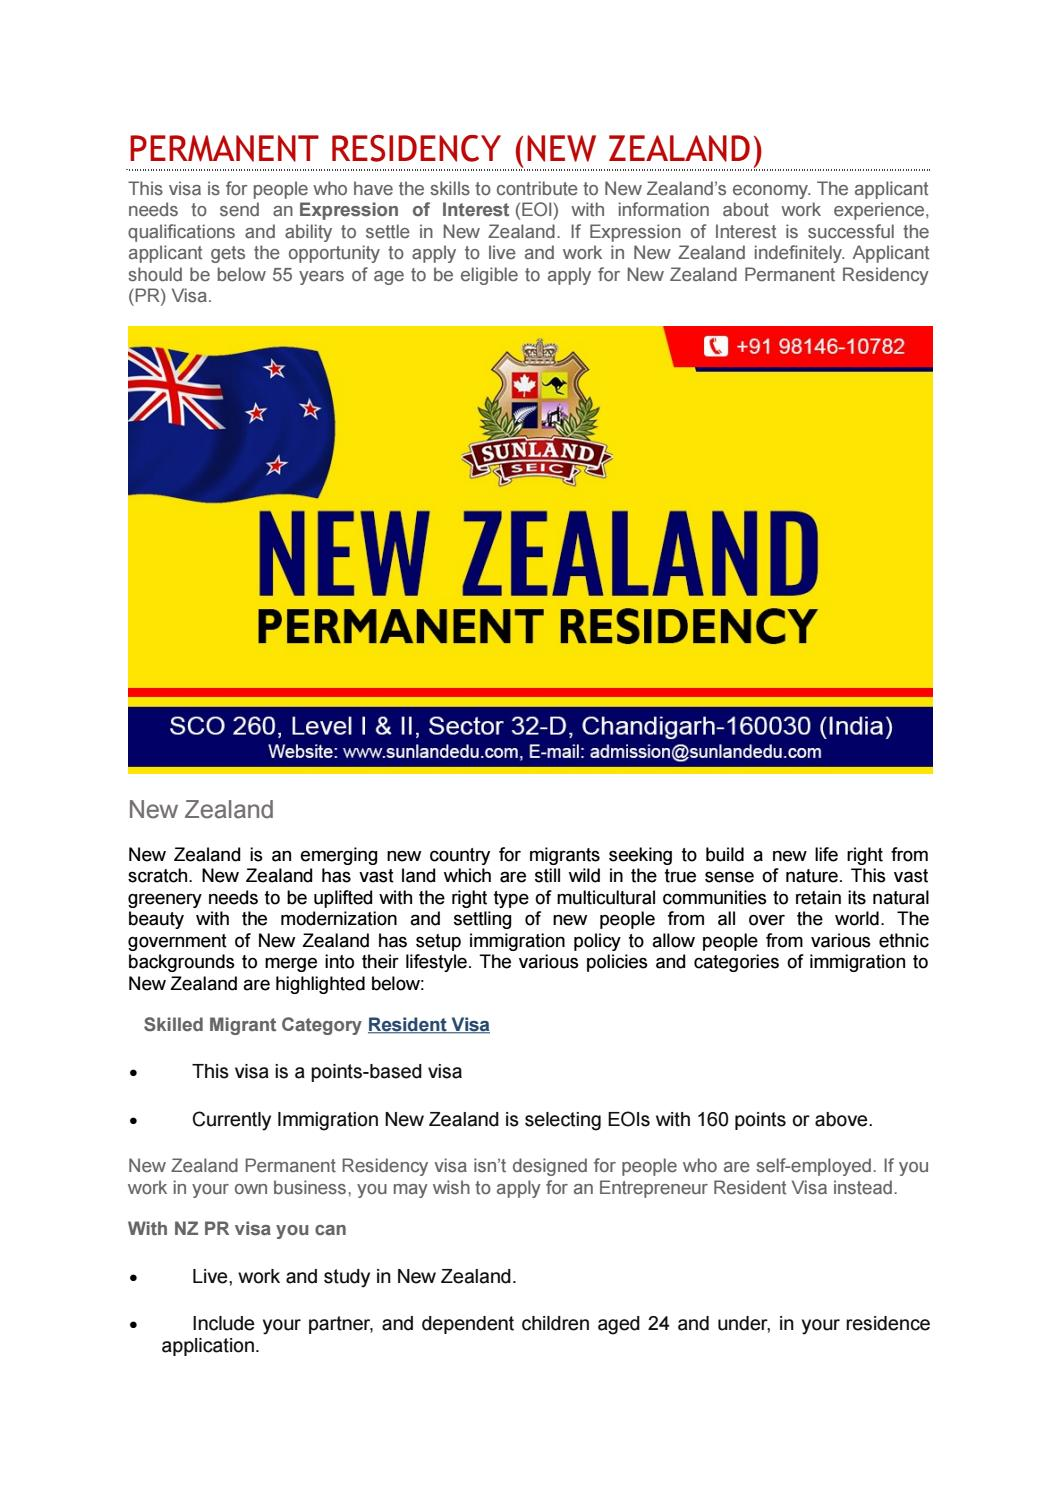 Visa Consultant for New Zealand in Chandigarh by James